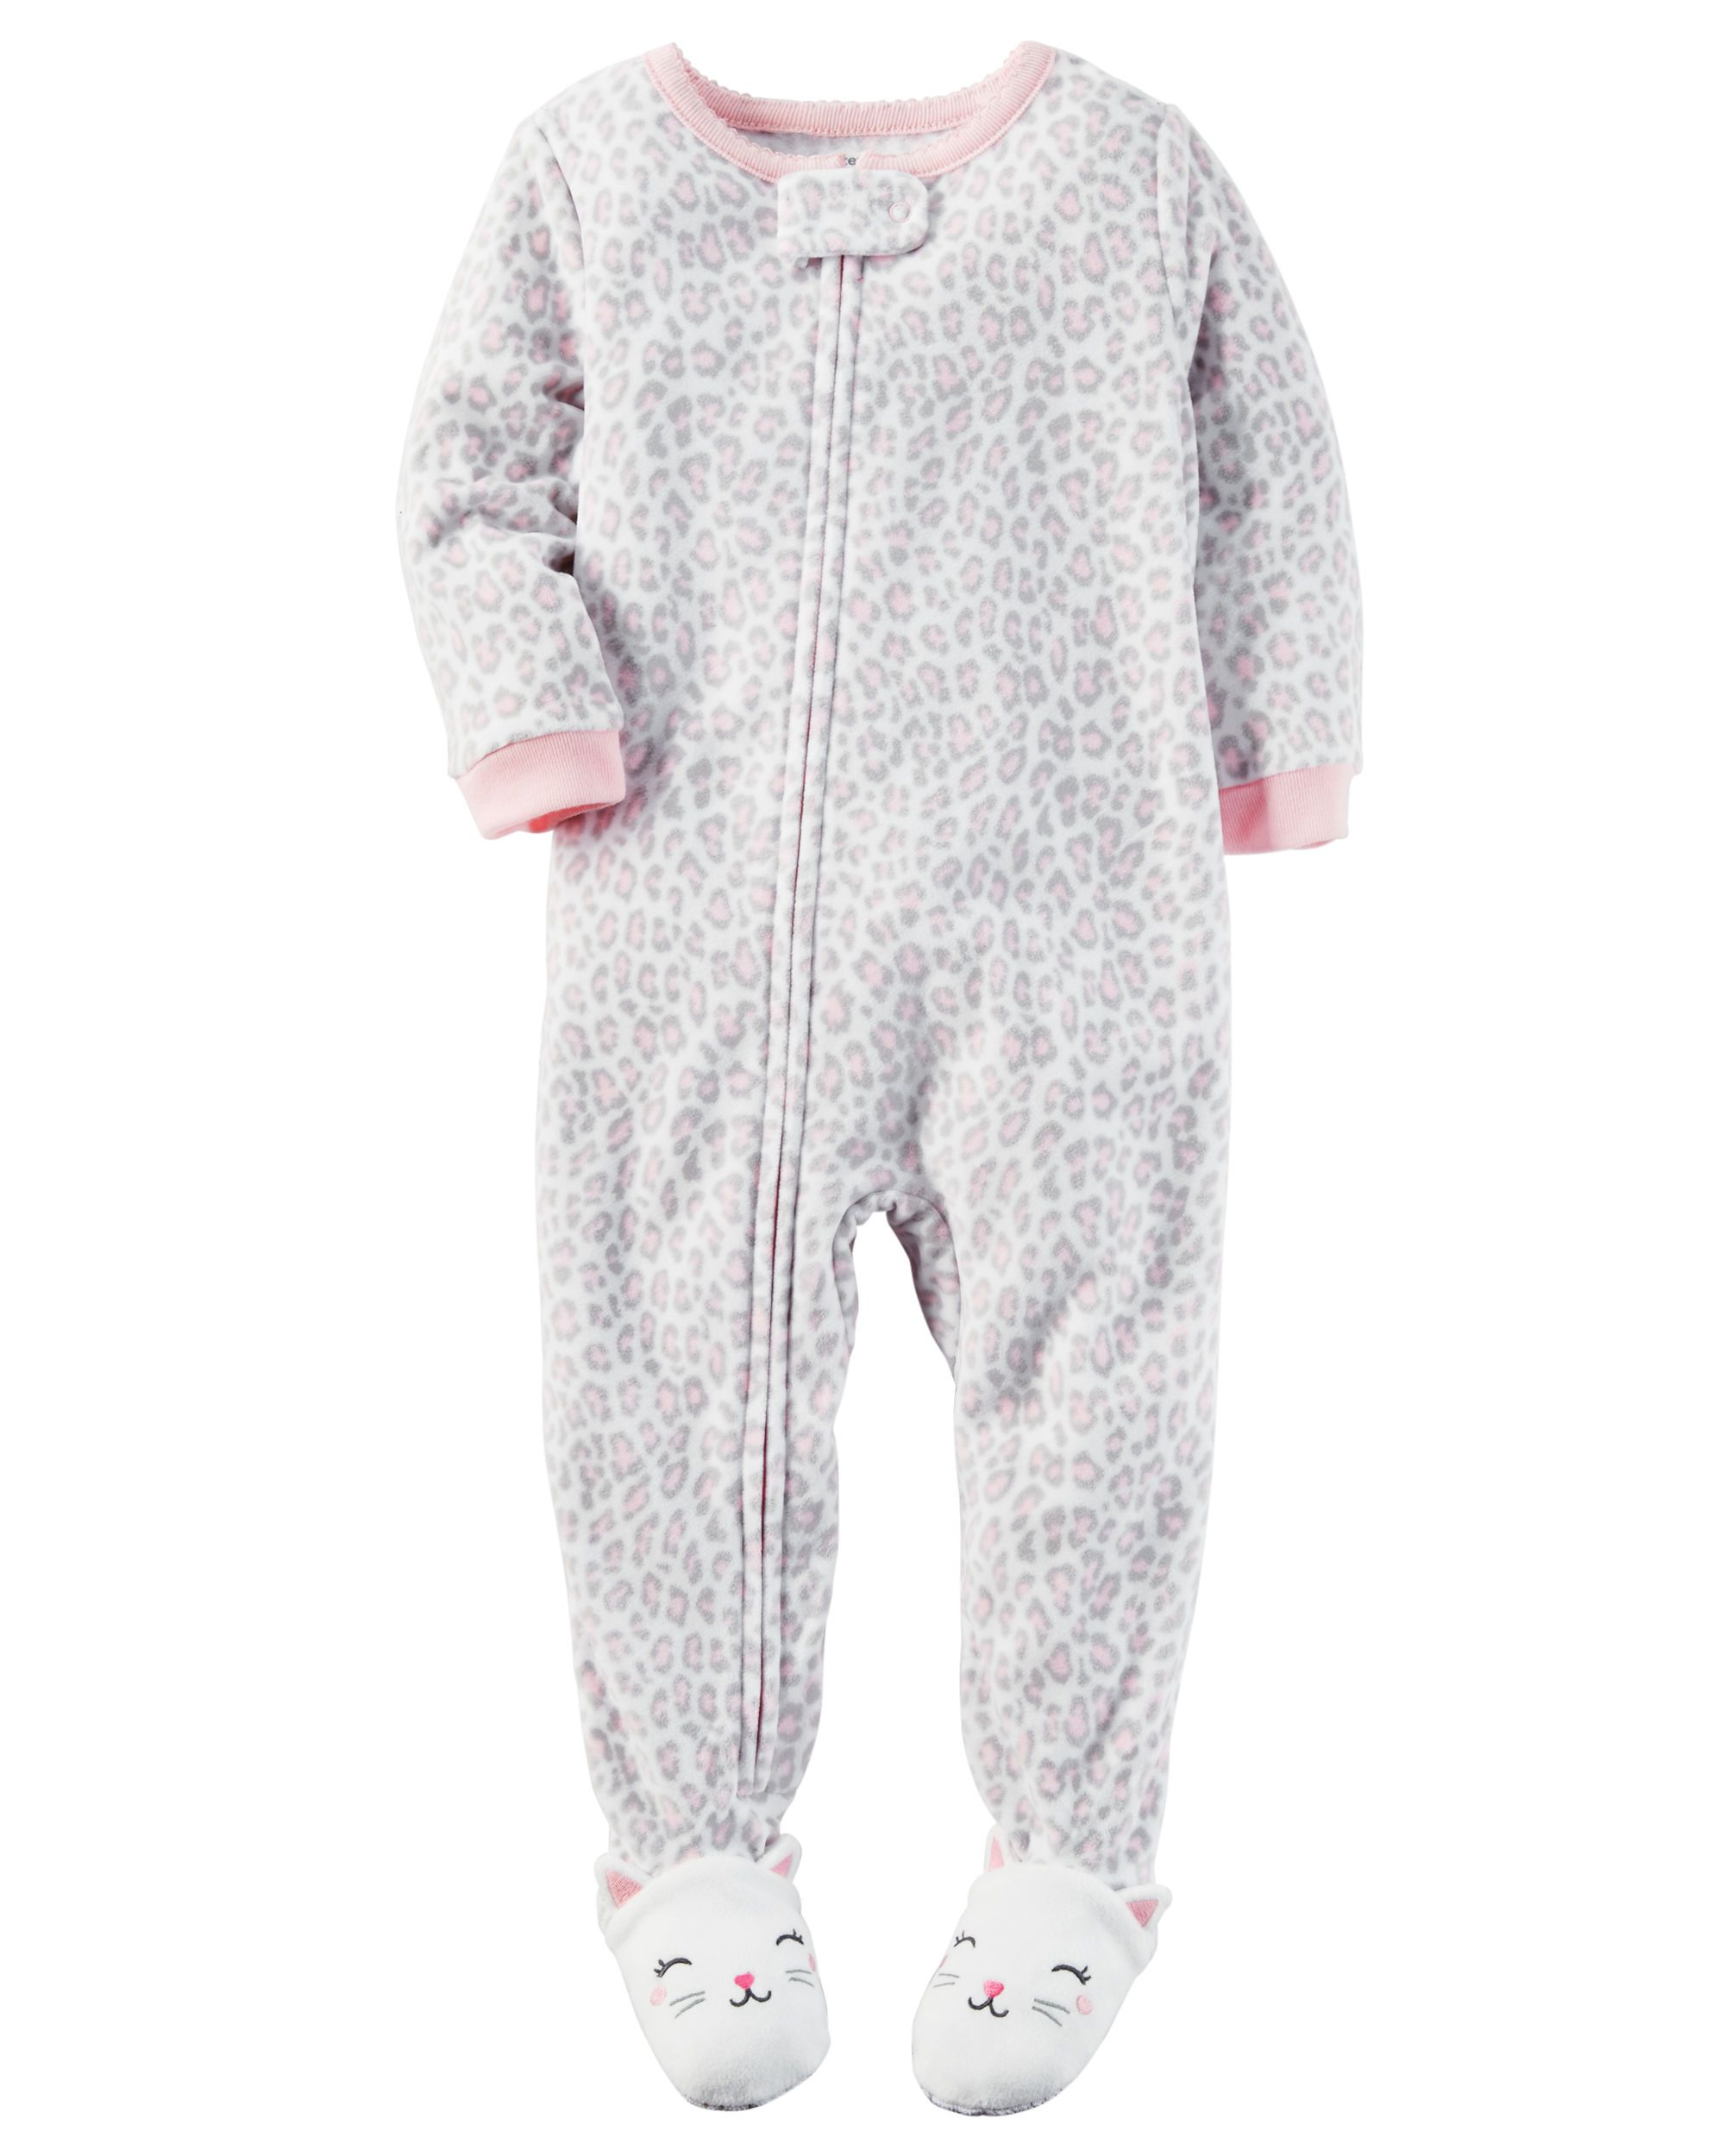 b80befe2e6 Crafted in snuggly fleece with an allover heart print